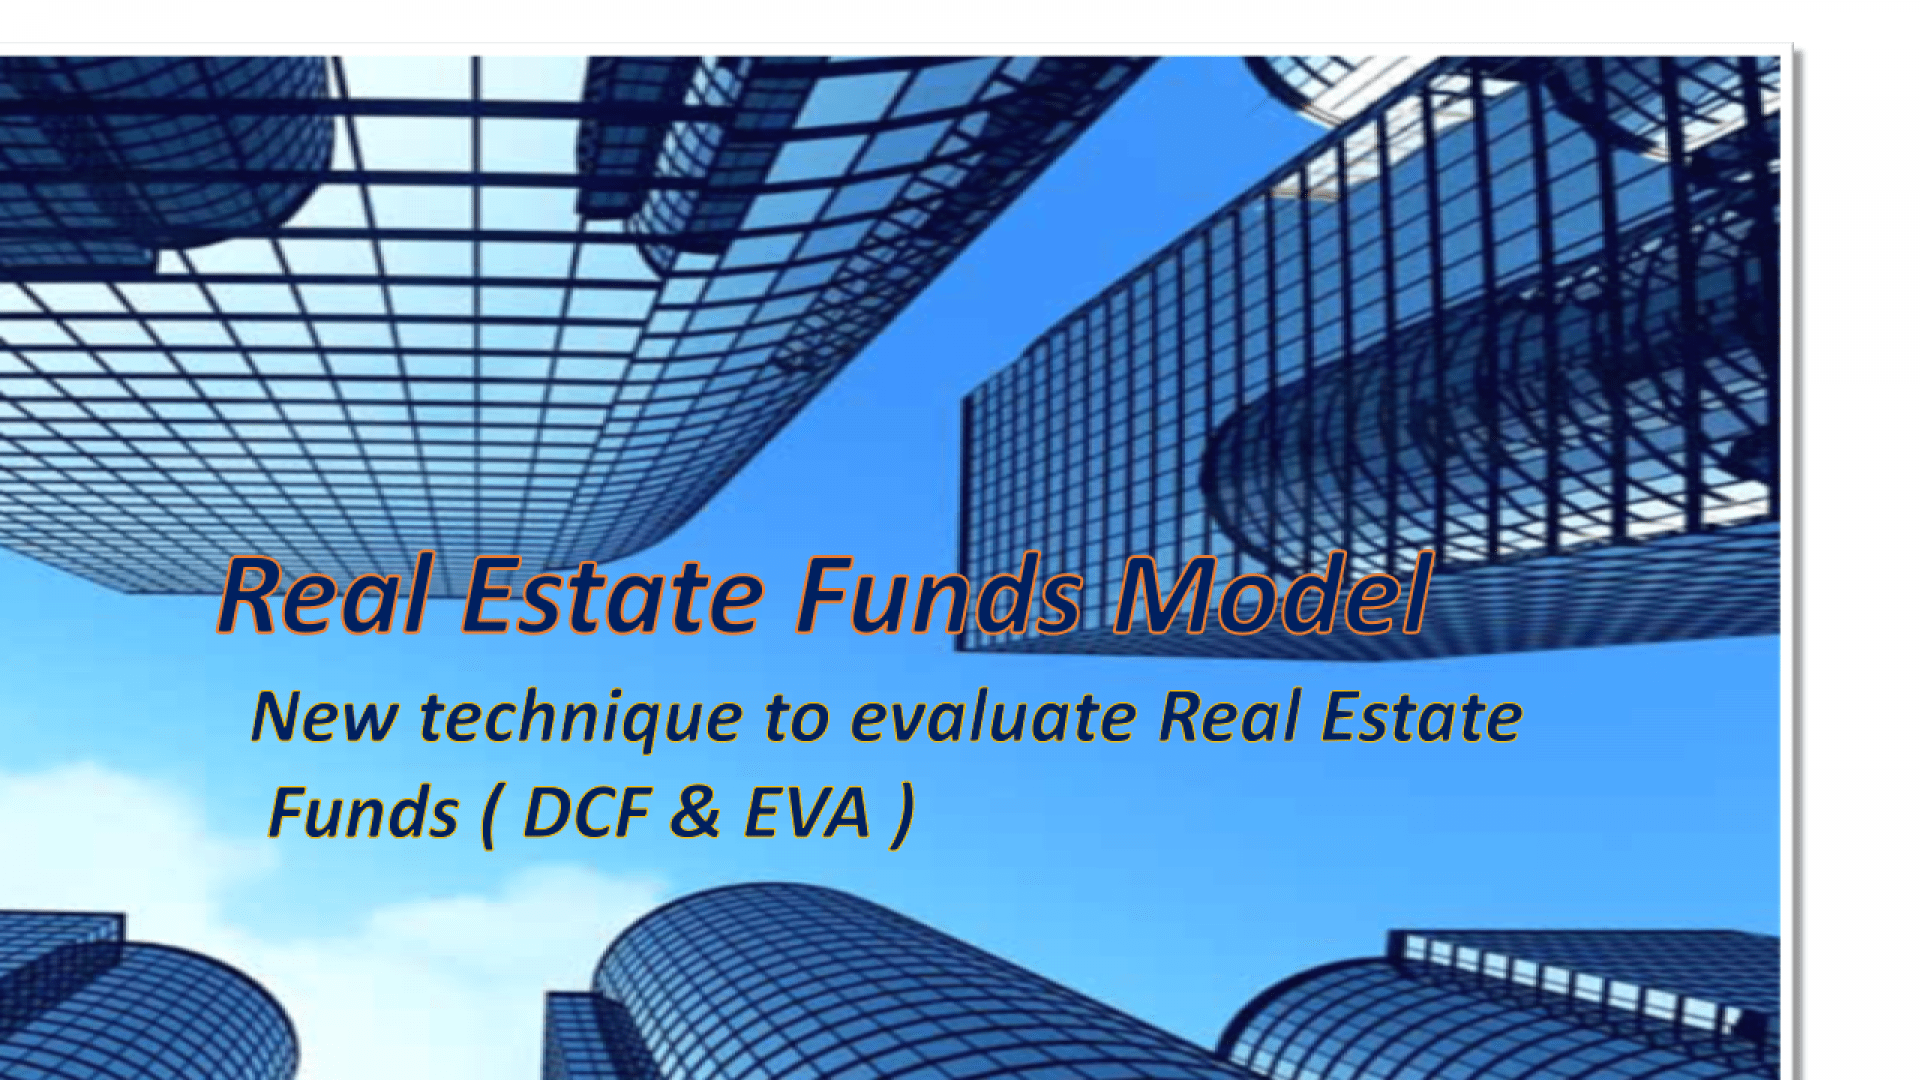 Real Estate Funds Model